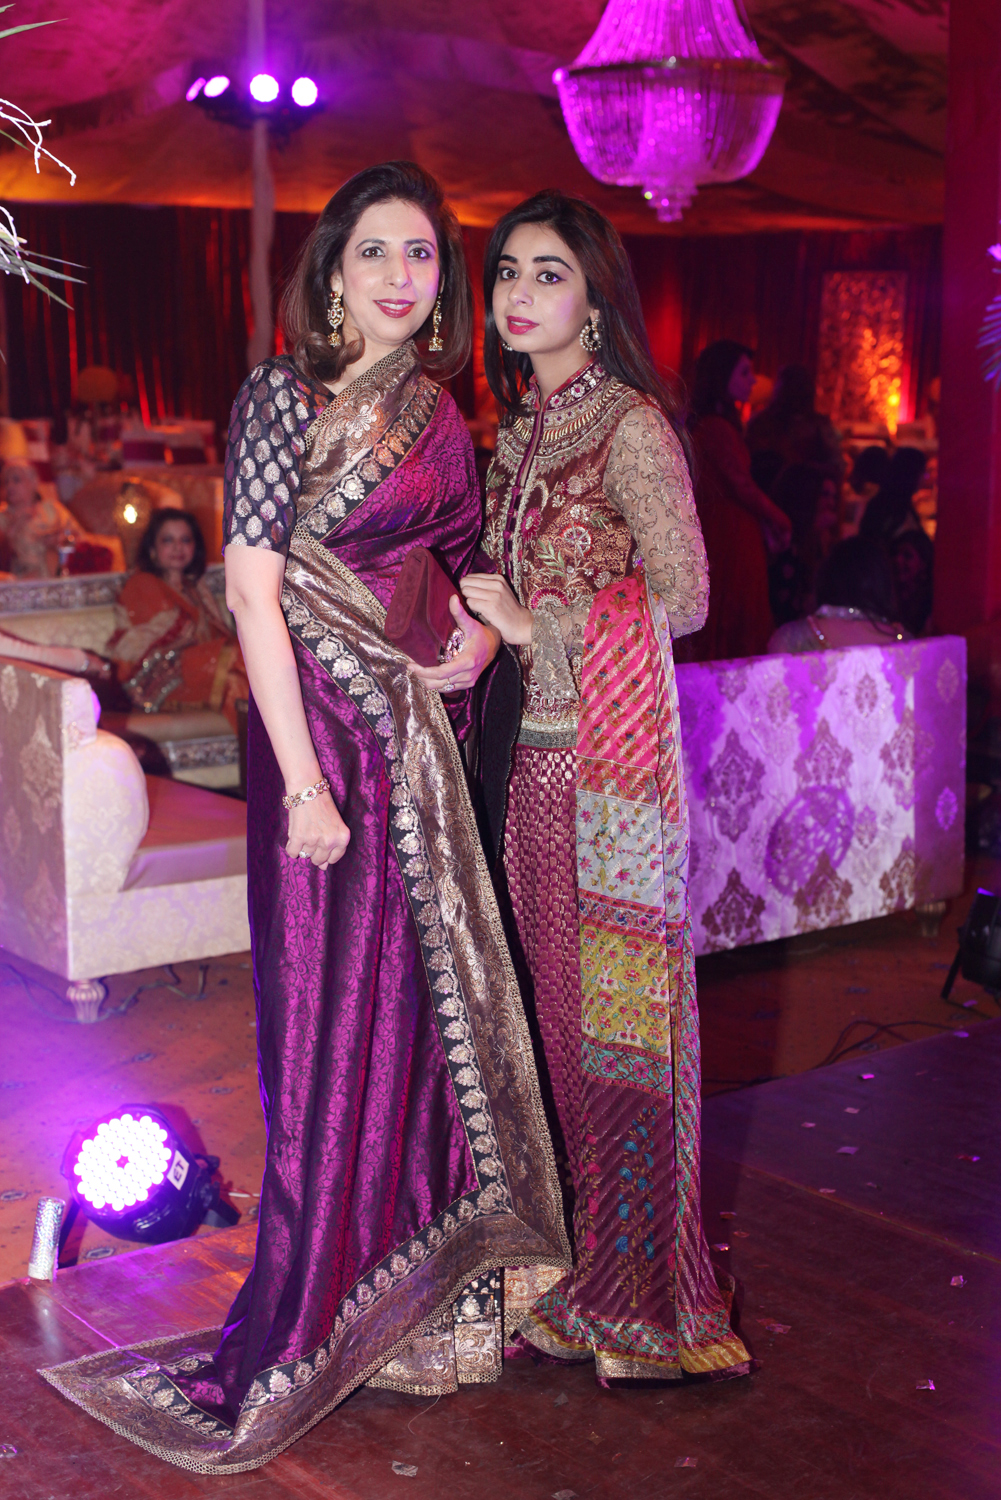 Meher Tata and Sana